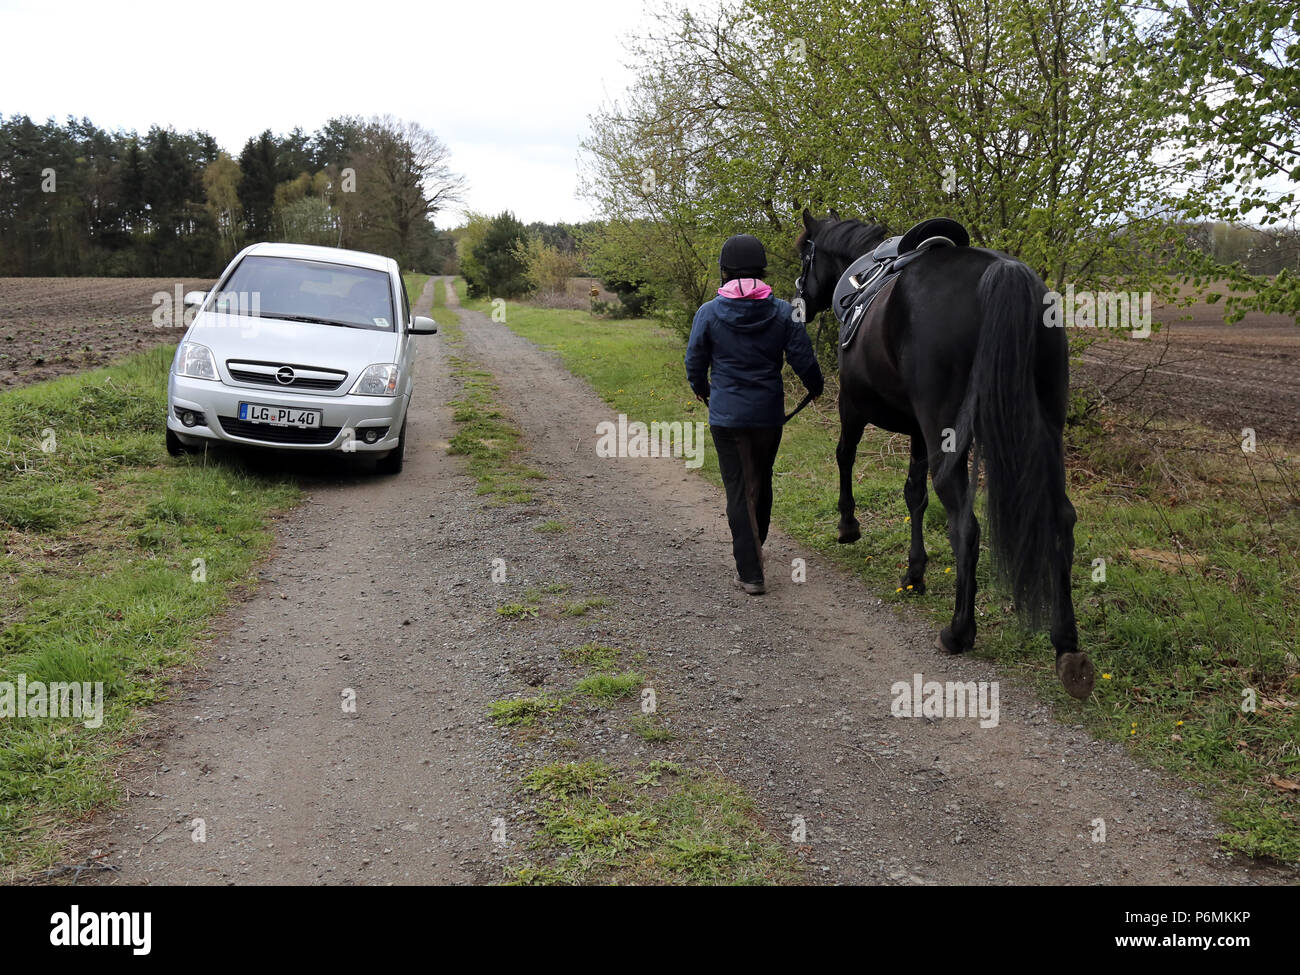 Melbeck, rider leads her horse past a parked car - Stock Image